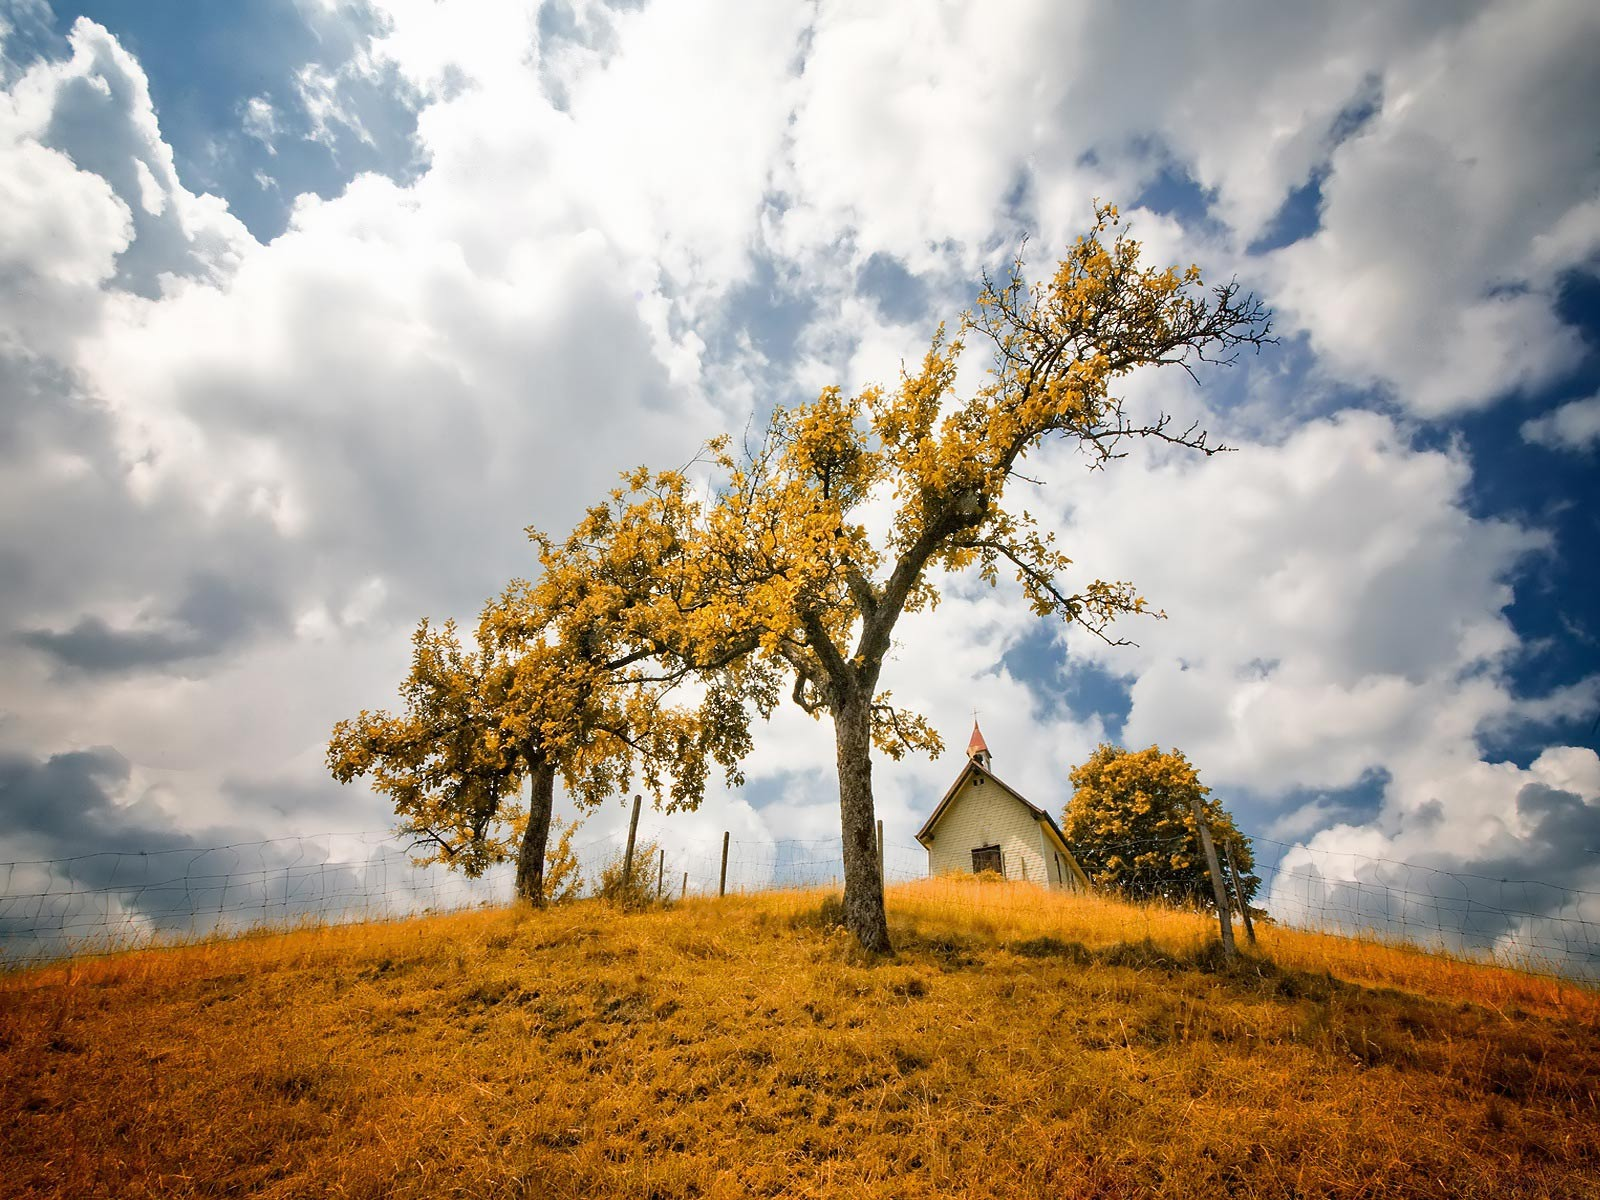 poetry hd wallpapers - photo #34